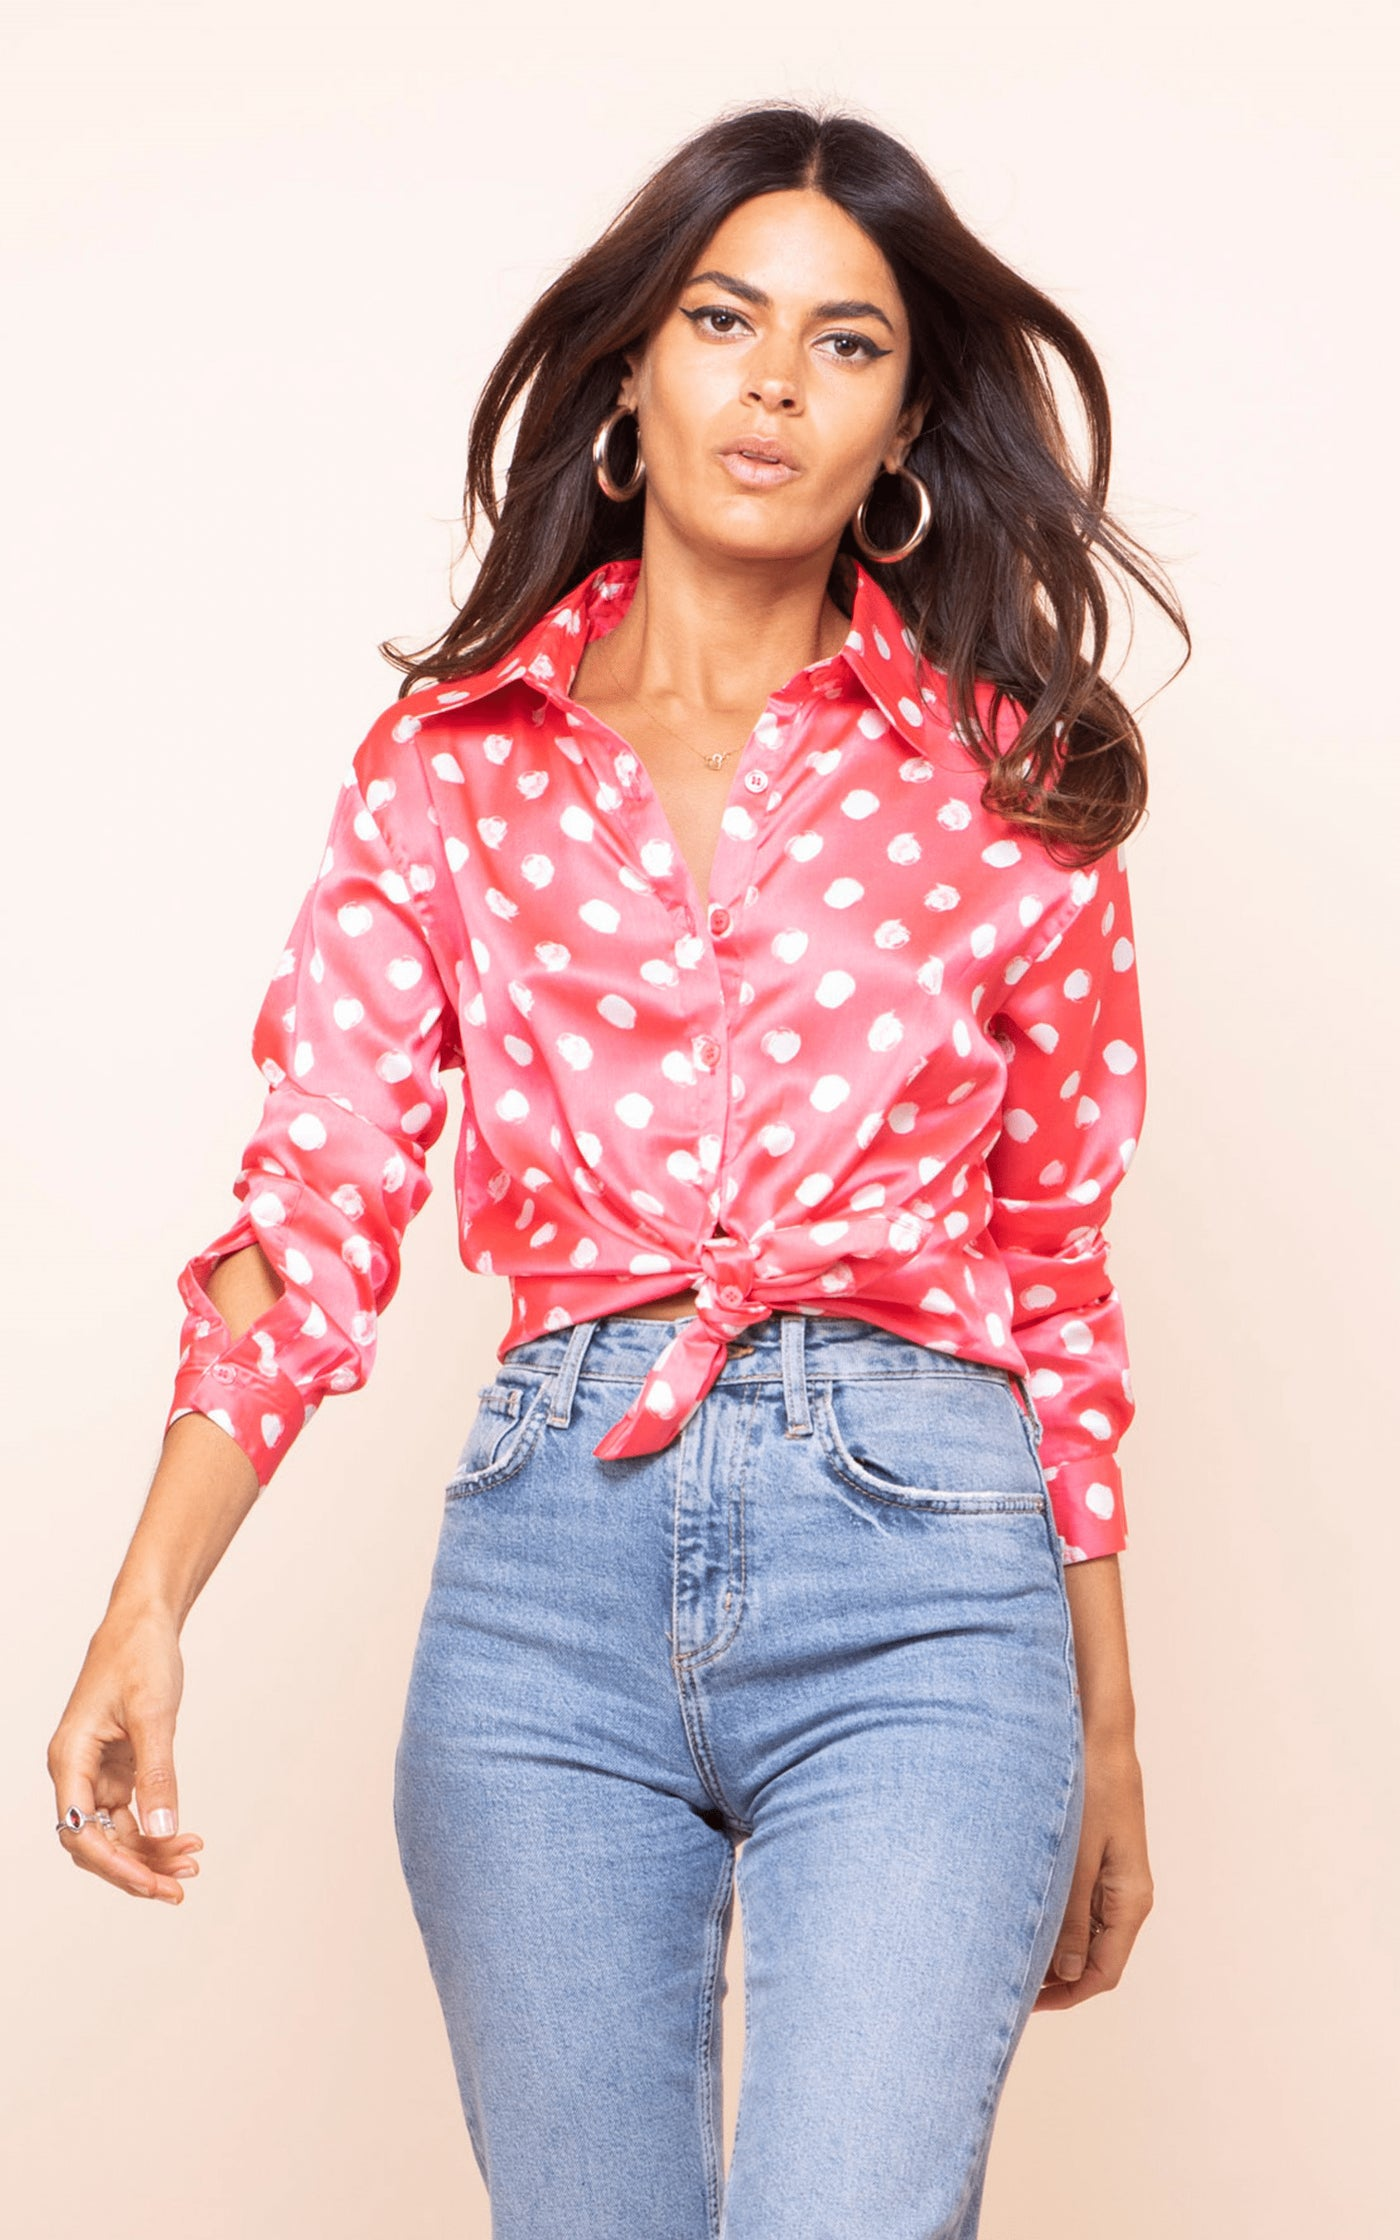 Dancing Leopard model walks forwards wearing Nevada Shirt in red dotty print with jeans